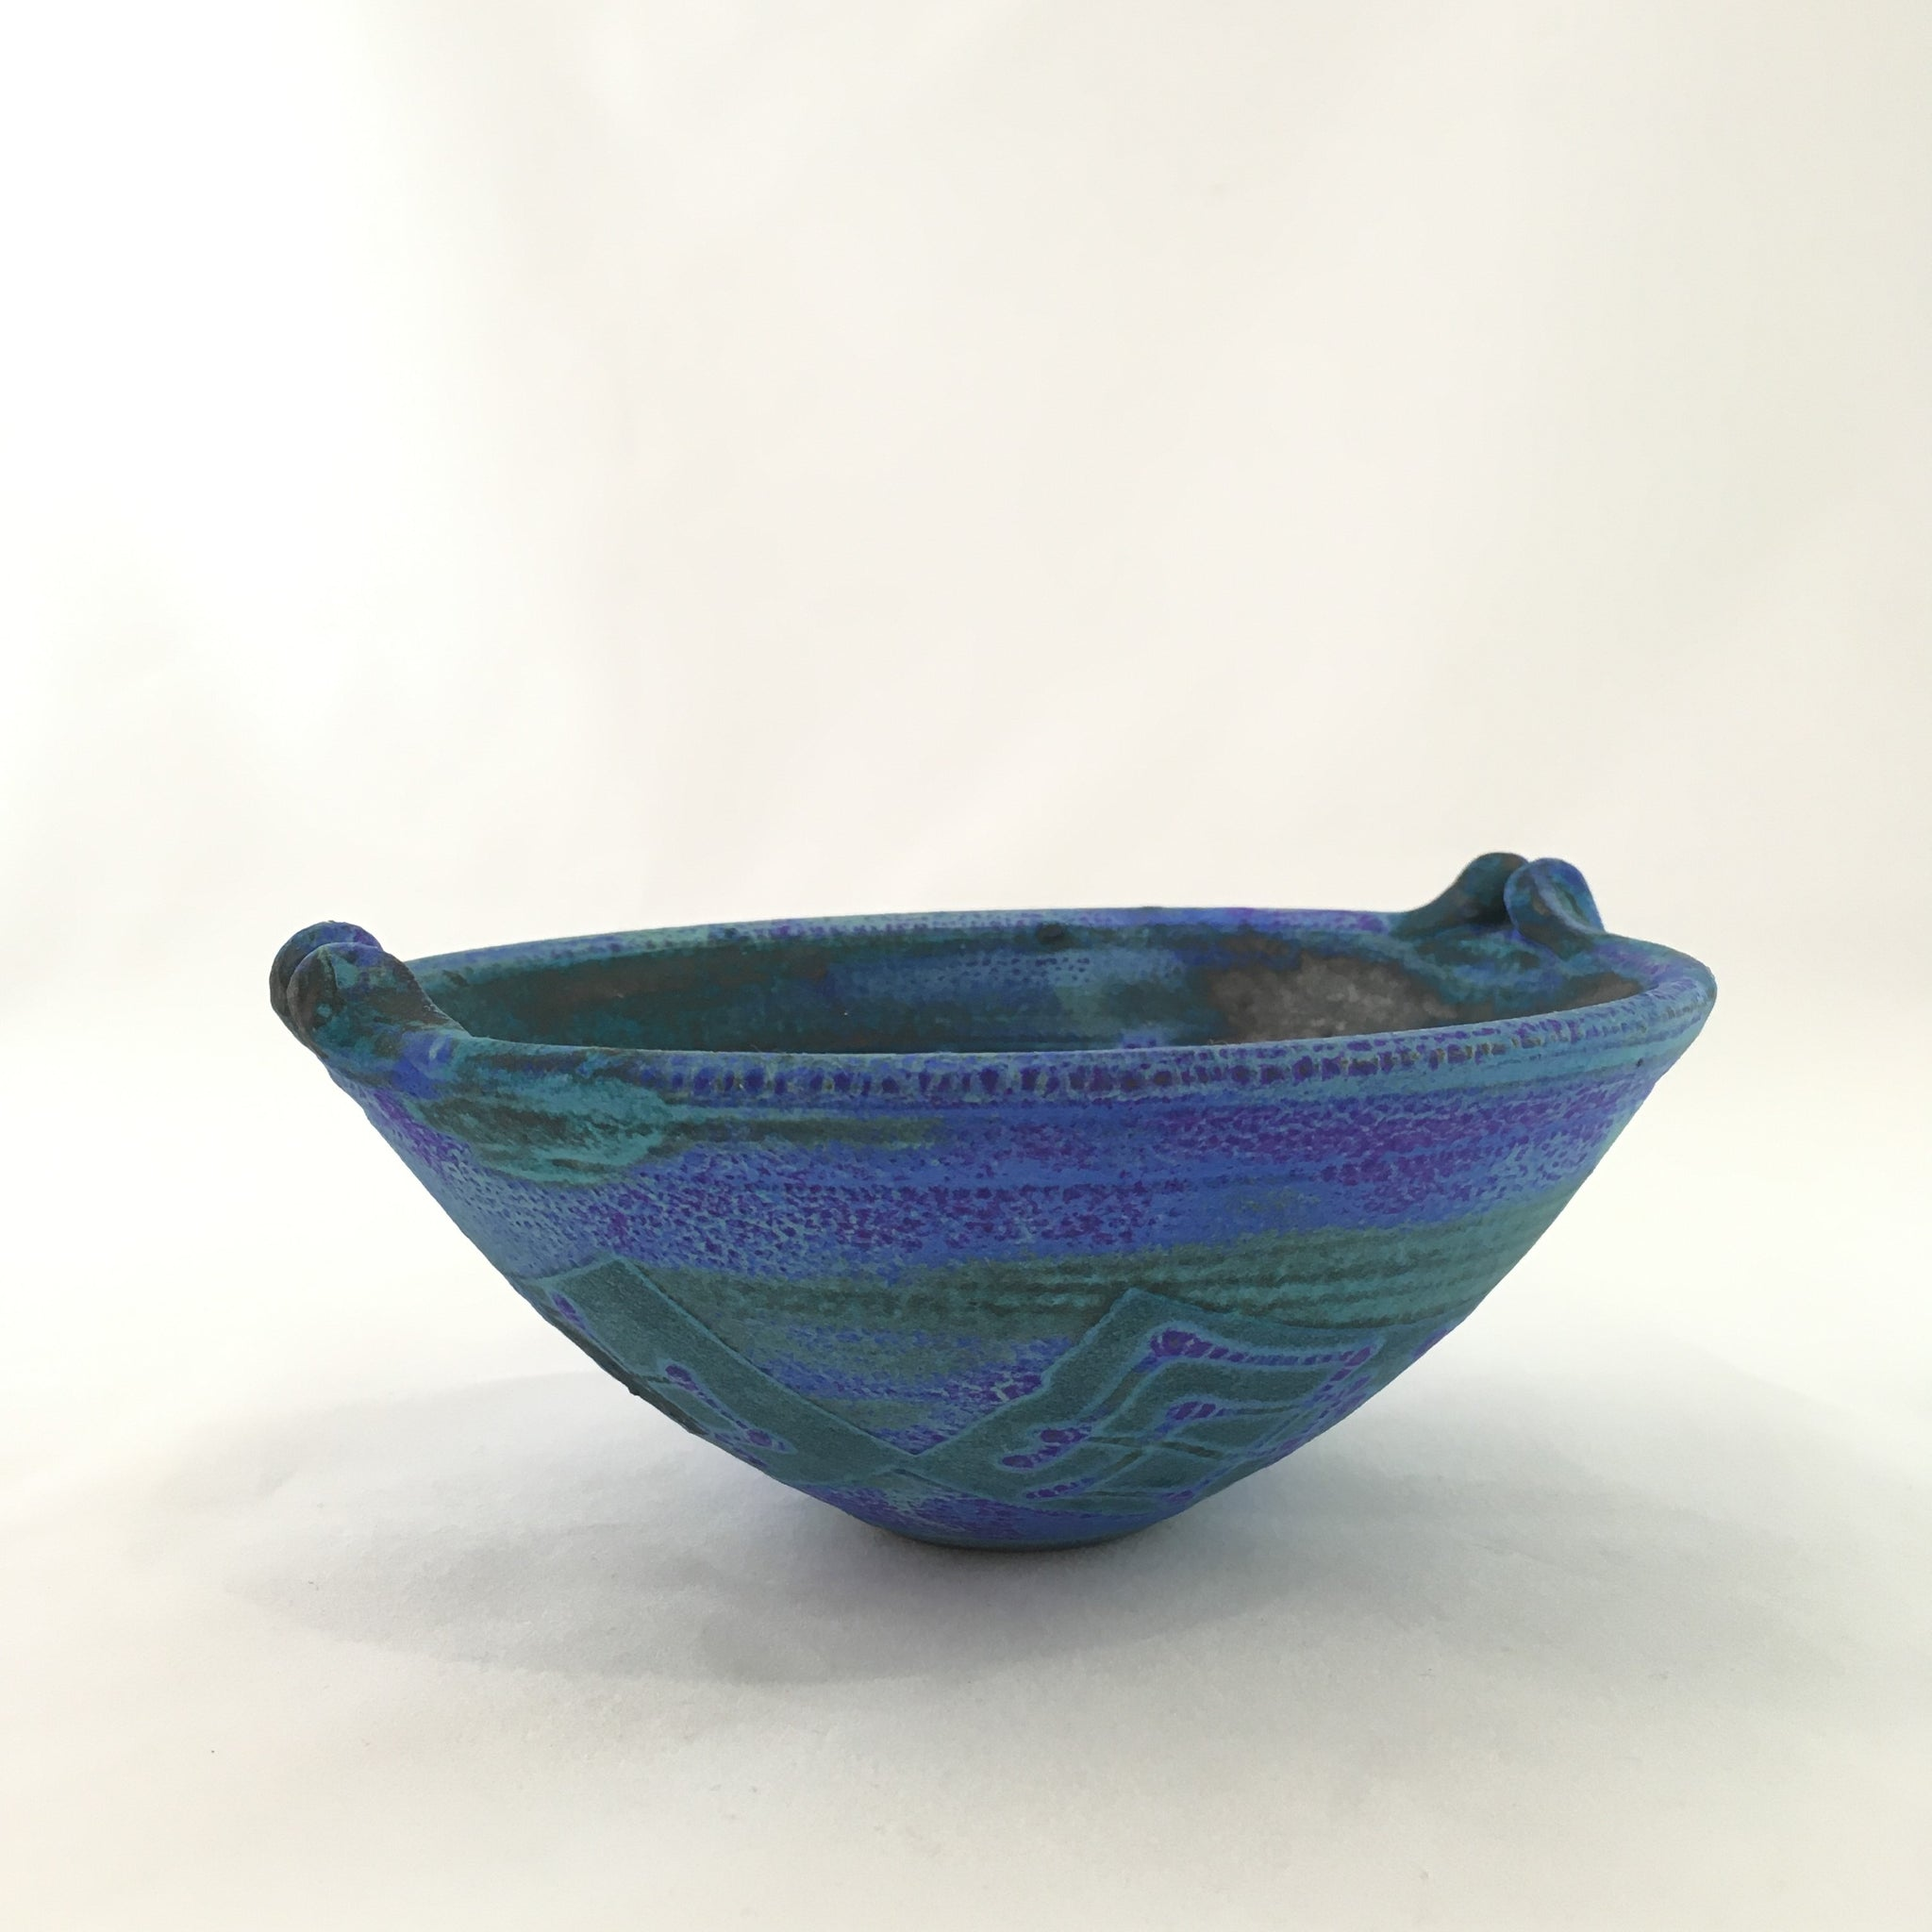 bowl at Craft NSW